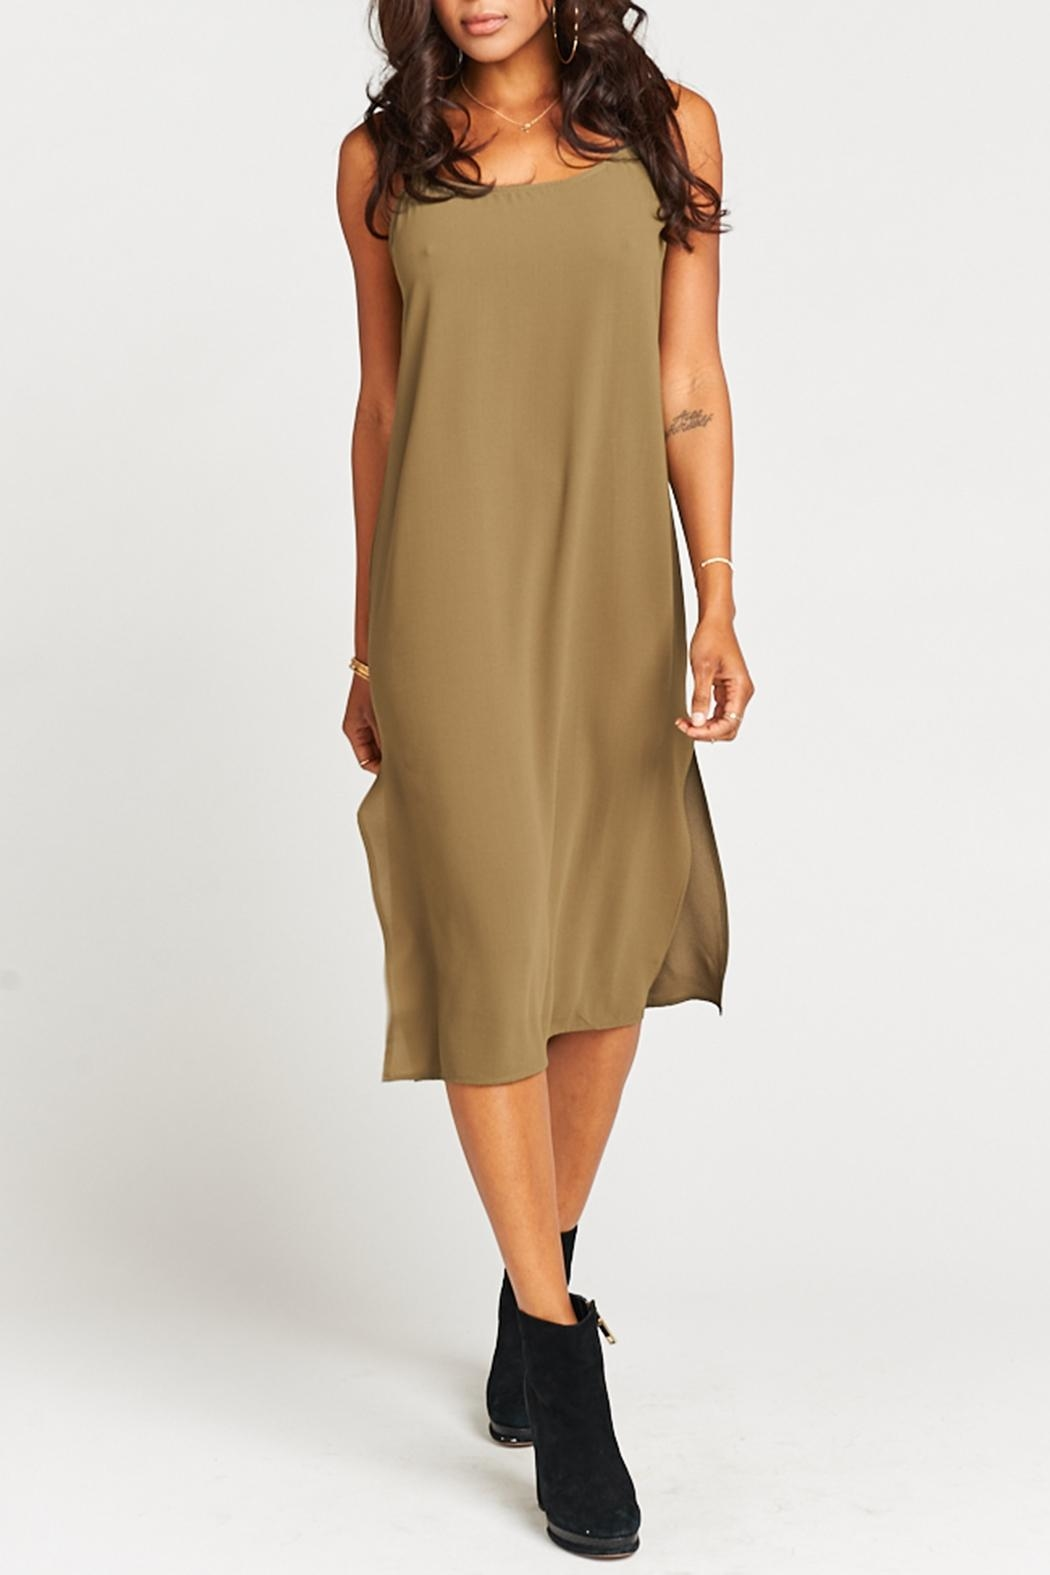 Show Me Your Mumu Shiloh Olive Dress - Main Image